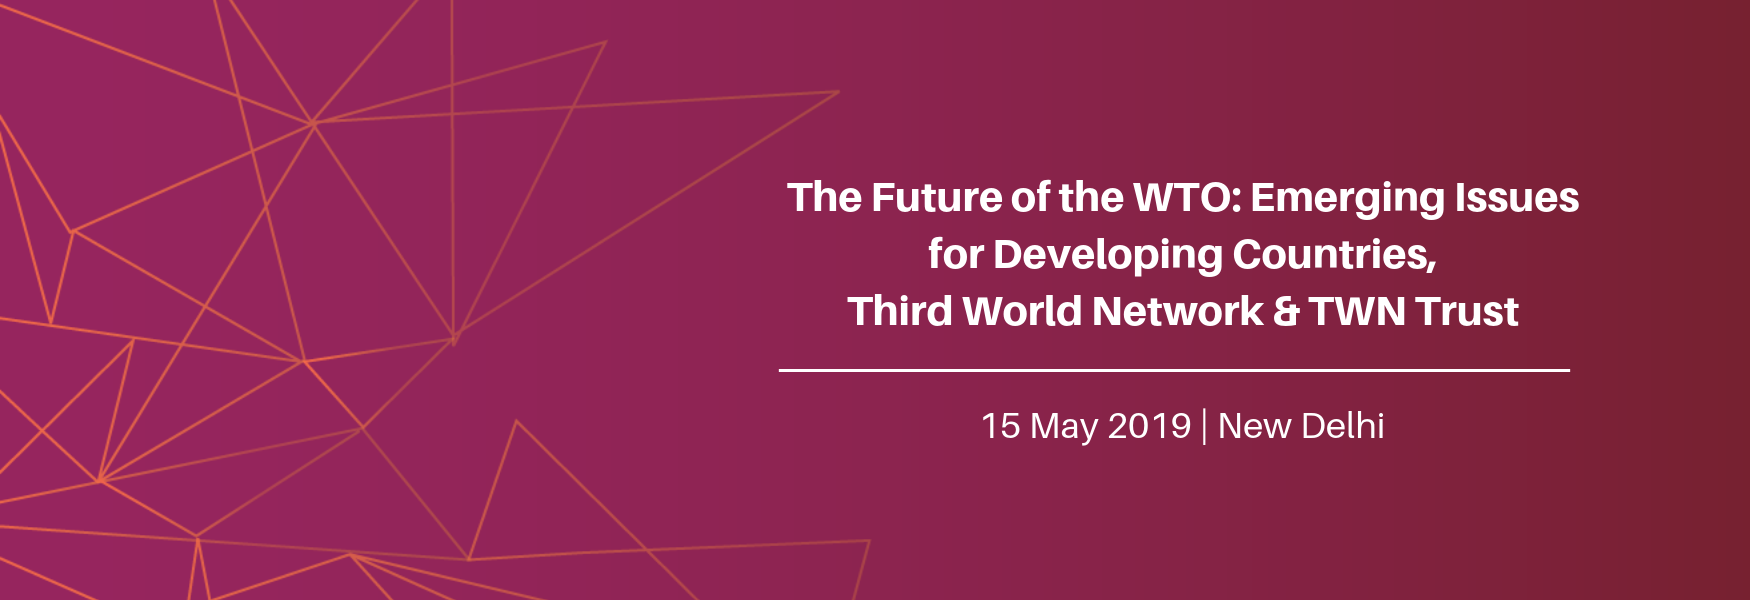 The Future of the WTO: Emerging Issues for Developing Countries 2019